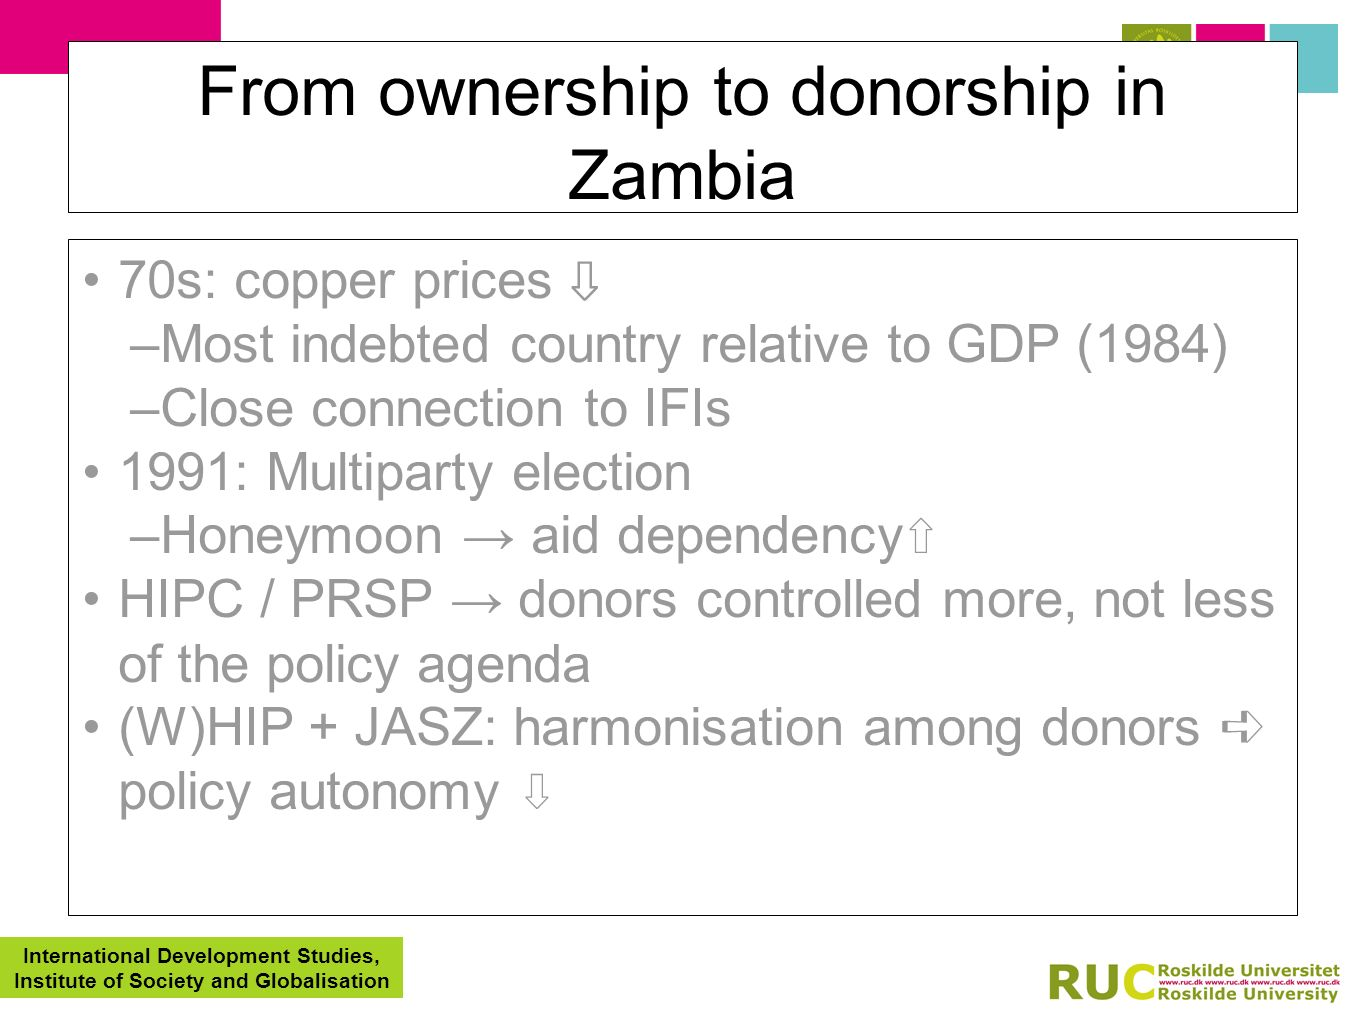 International Development Studies, Institute of Society and Globalisation From ownership to donorship in Zambia 70s: copper prices –Most indebted country relative to GDP (1984) –Close connection to IFIs 1991: Multiparty election –Honeymoon aid dependency HIPC / PRSP donors controlled more, not less of the policy agenda (W)HIP + JASZ: harmonisation among donors policy autonomy